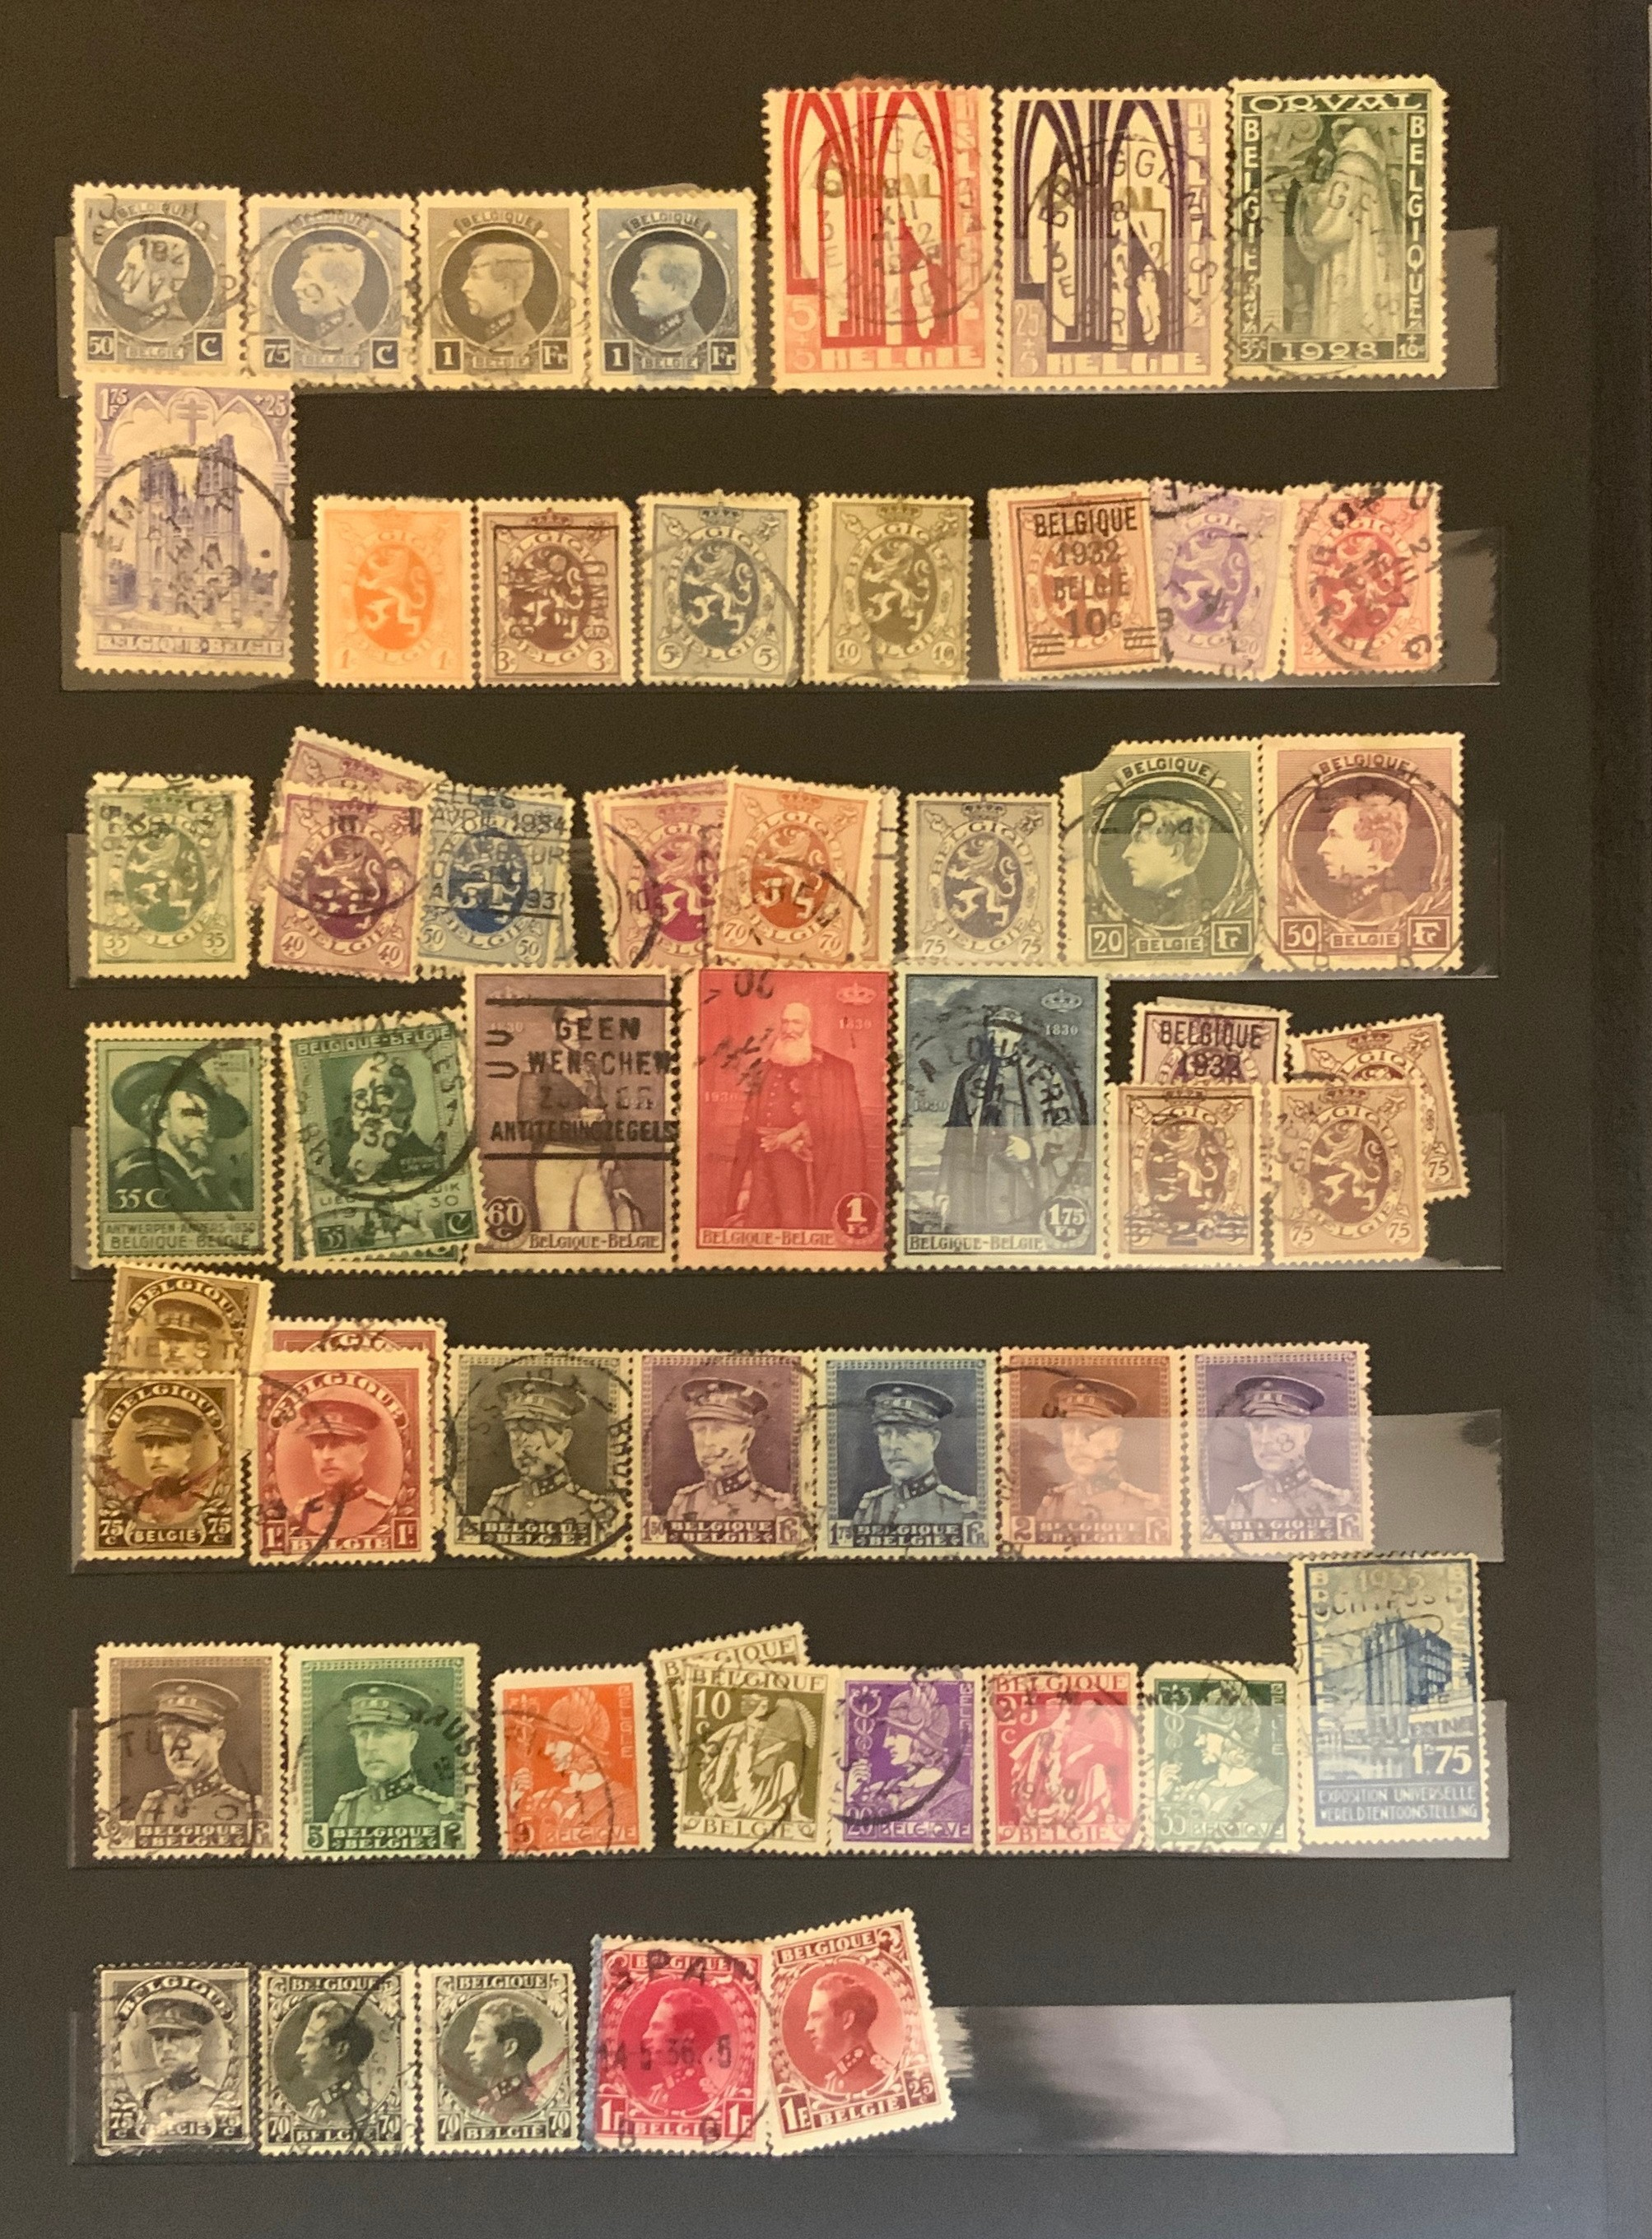 STOCKBOOK WITH STAMPS FROM VARIOUS COUNTRIES INCLUDING AUSTRIA, BELGIUM, FRANCE - Image 10 of 16